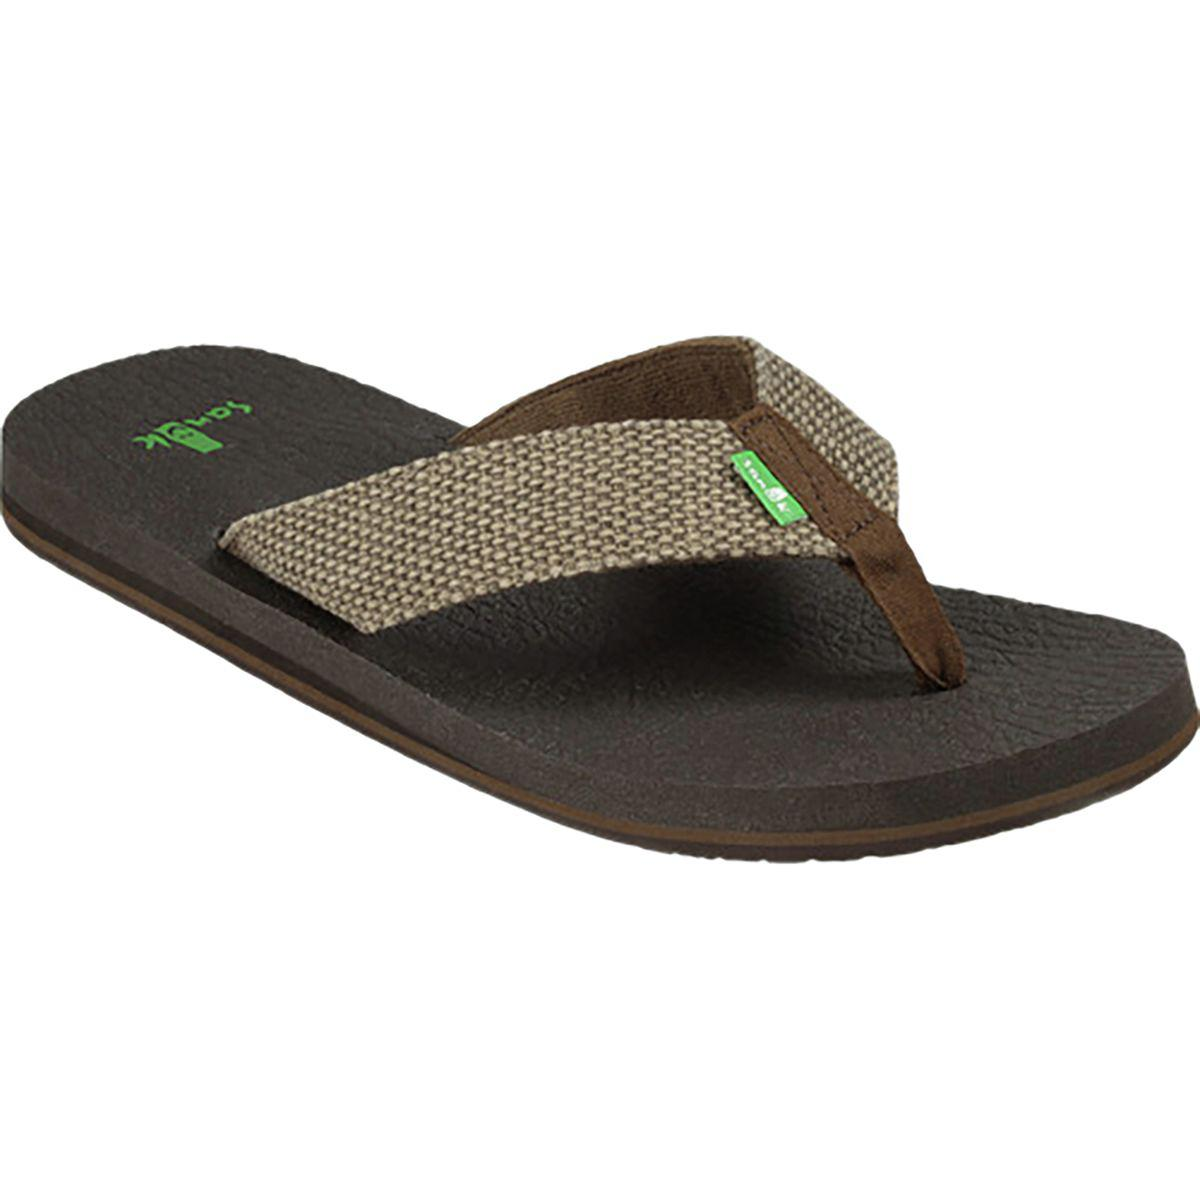 Sanuk Fraid Not Big and Tall Thong Sandal(Men's) -Khaki Canvas Clearance Brand New Unisex Cheap 100% Authentic Get Authentic Cheap Online 4PxmjQBh